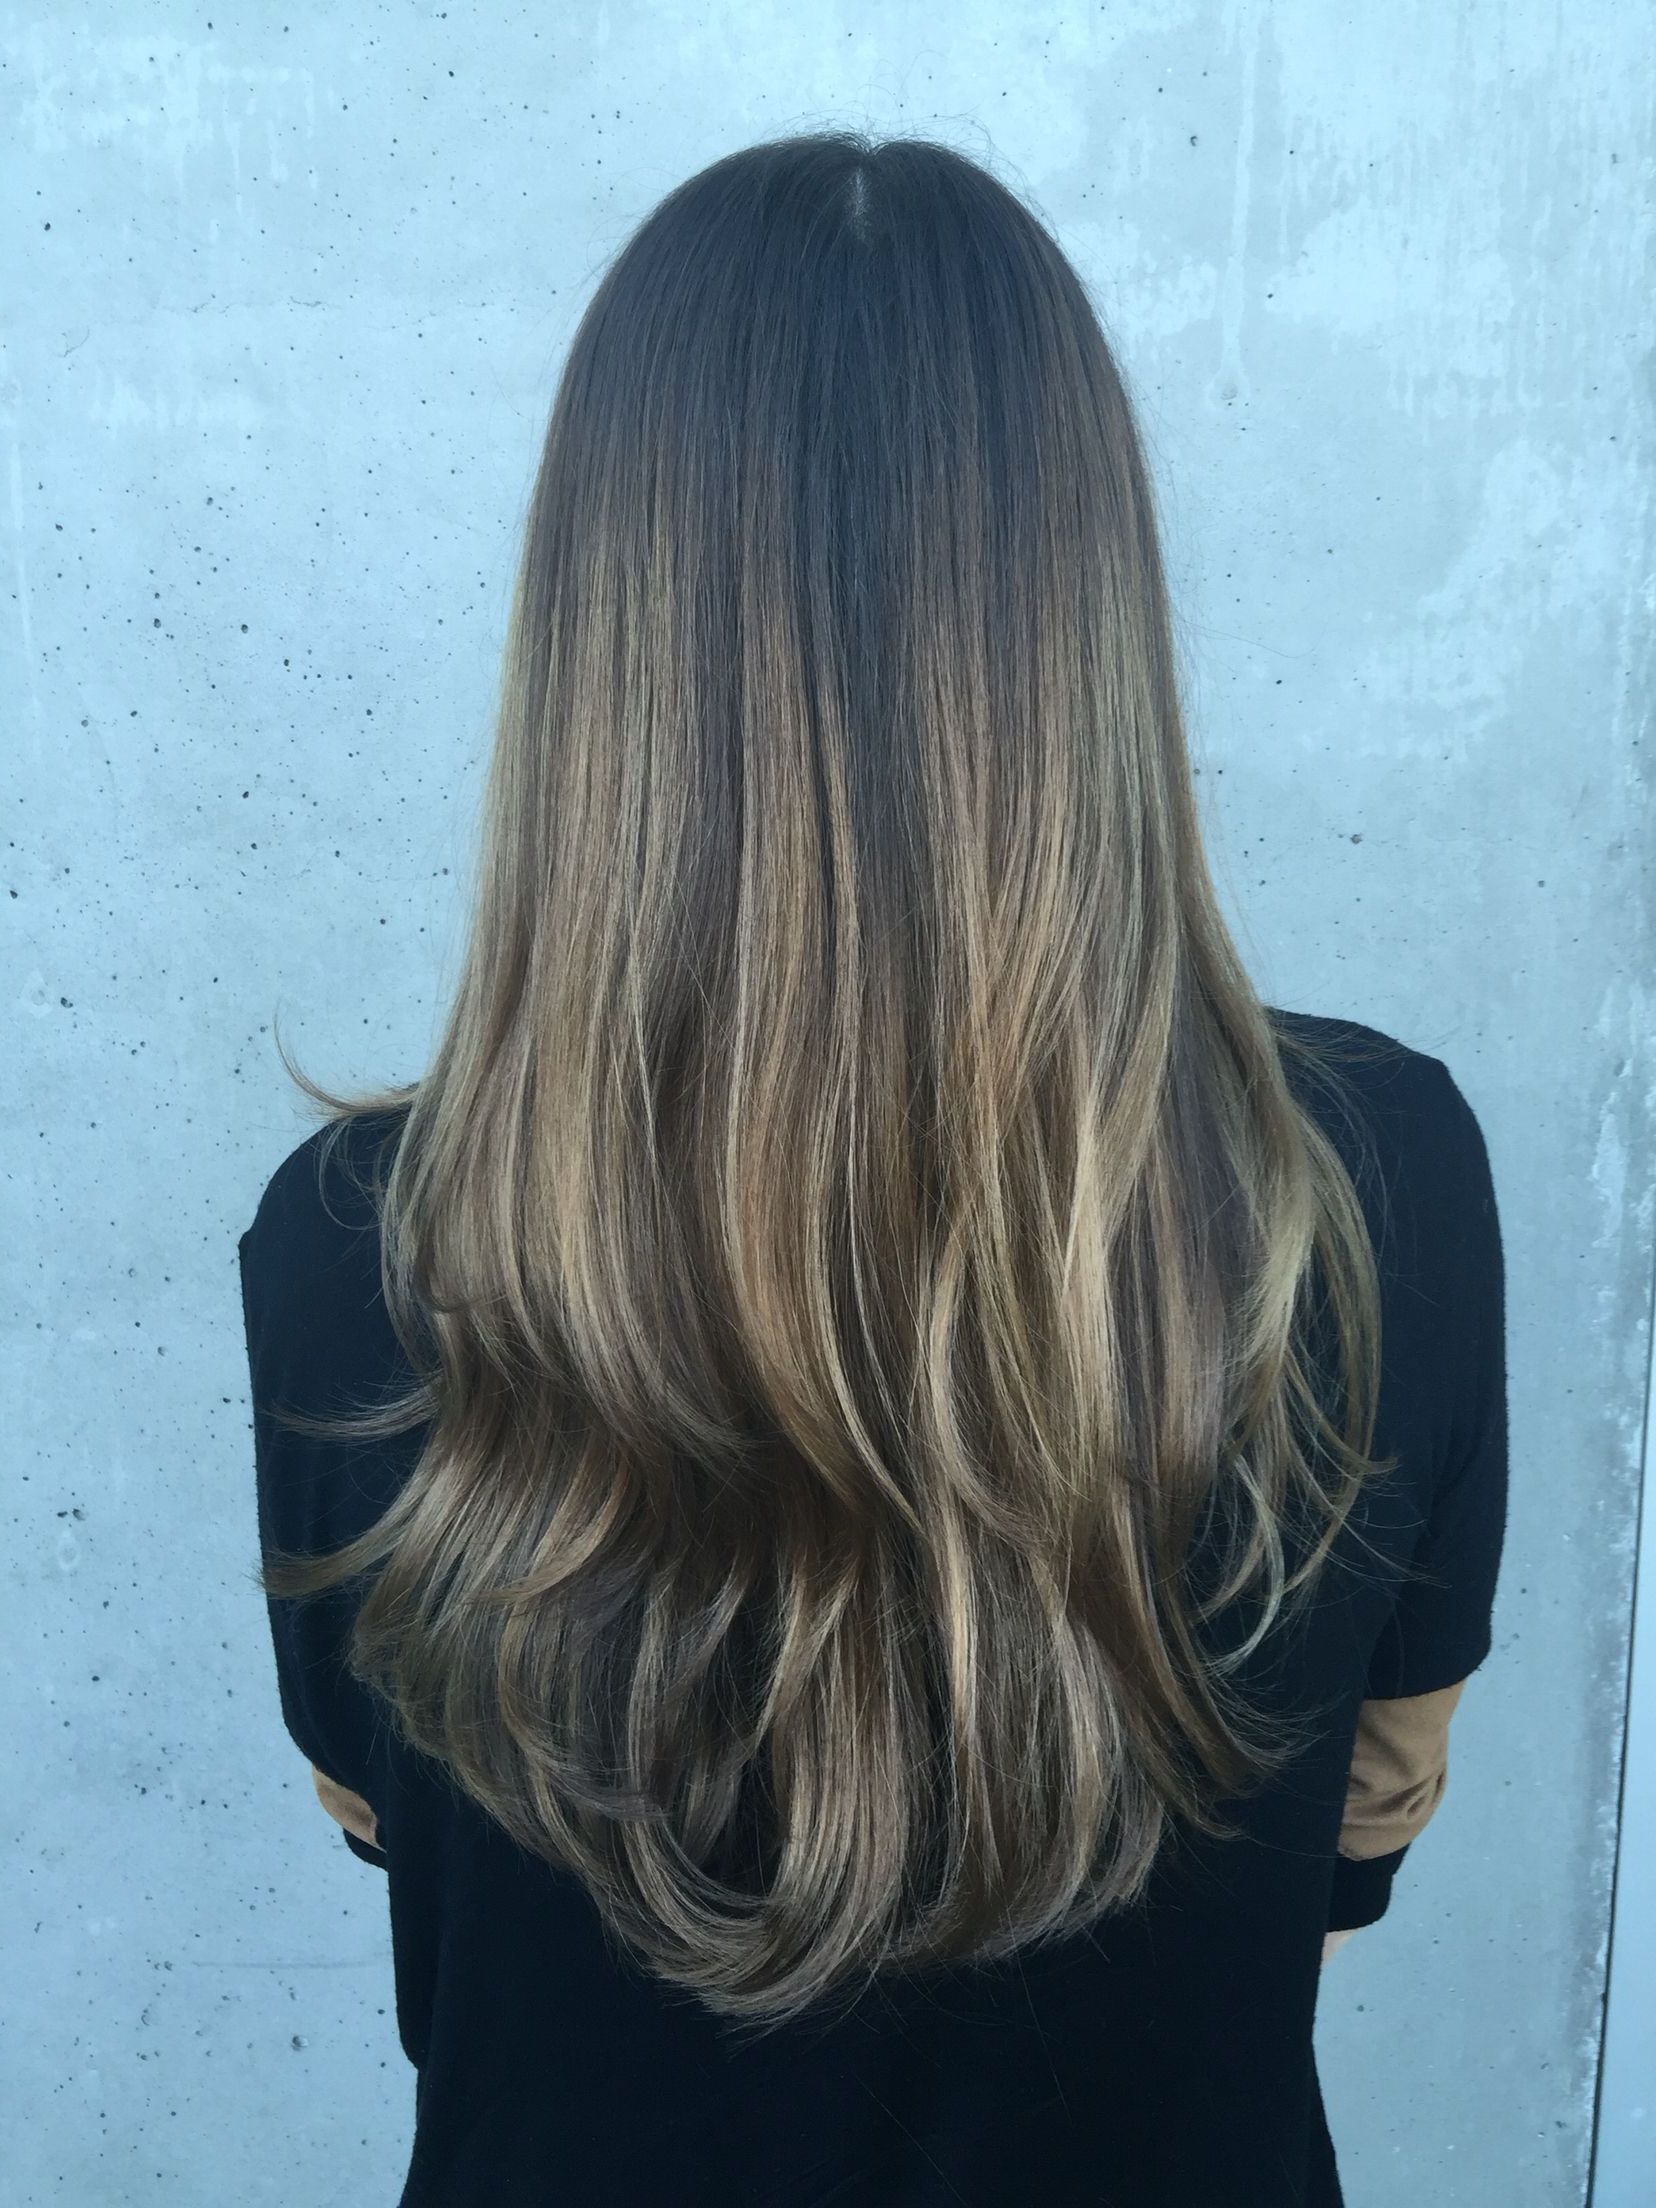 Brunette Balayage With Subtle Blonde Highlights | Subtle Throughout Subtle Balayage Highlights For Short Hairstyles (Gallery 16 of 20)